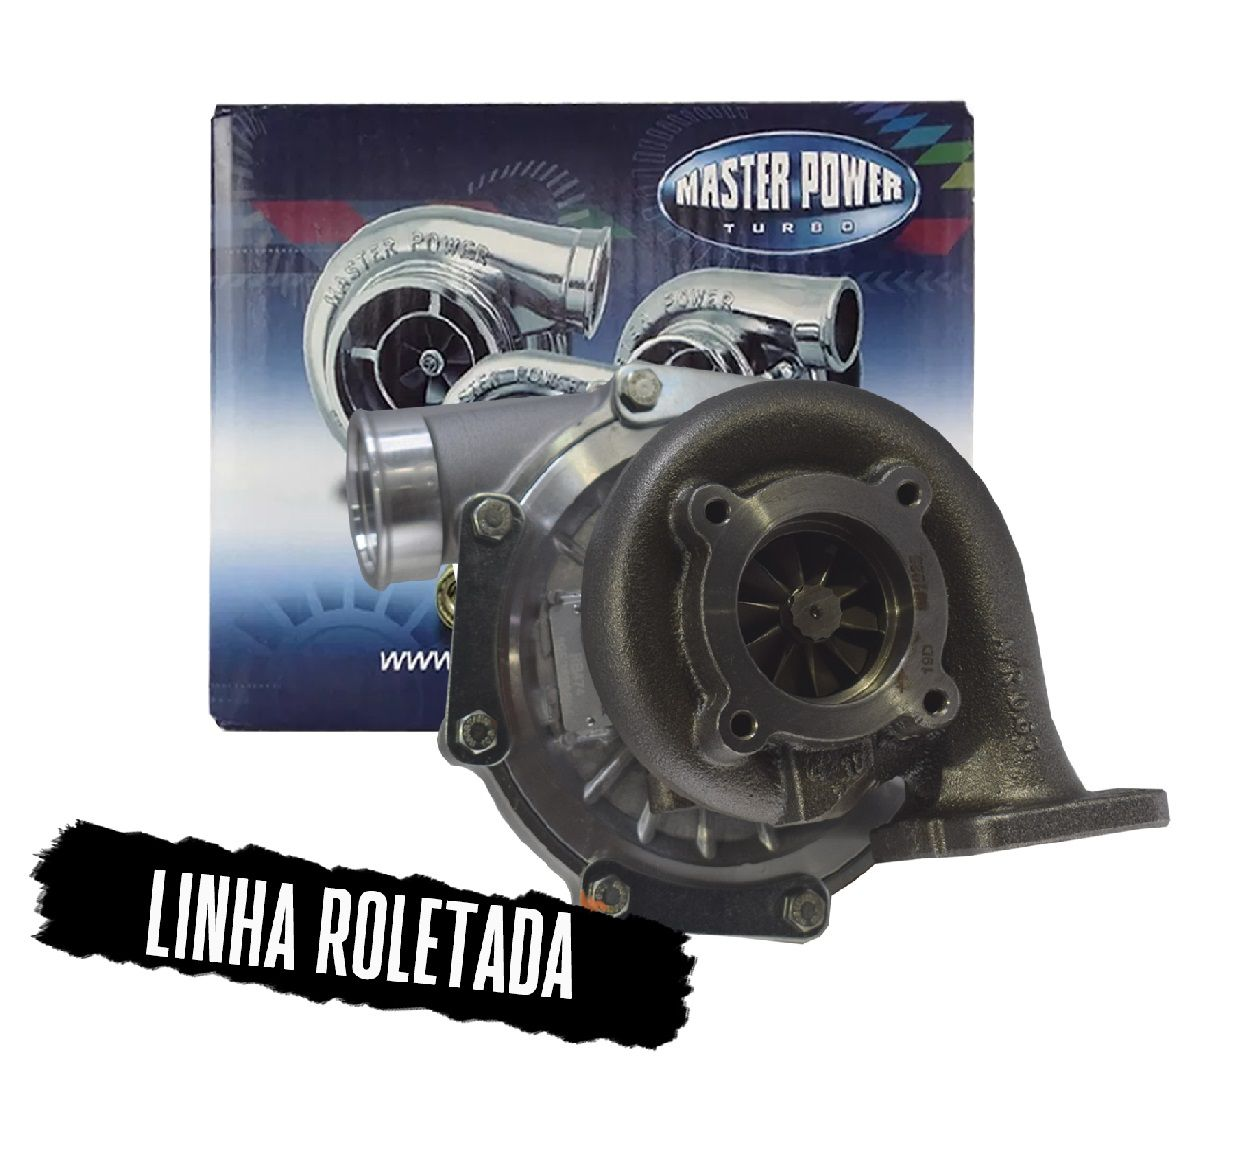 TURBINA ROLETADA / BEARING MASTER POWER - RB 474 .48 PULSATIVA